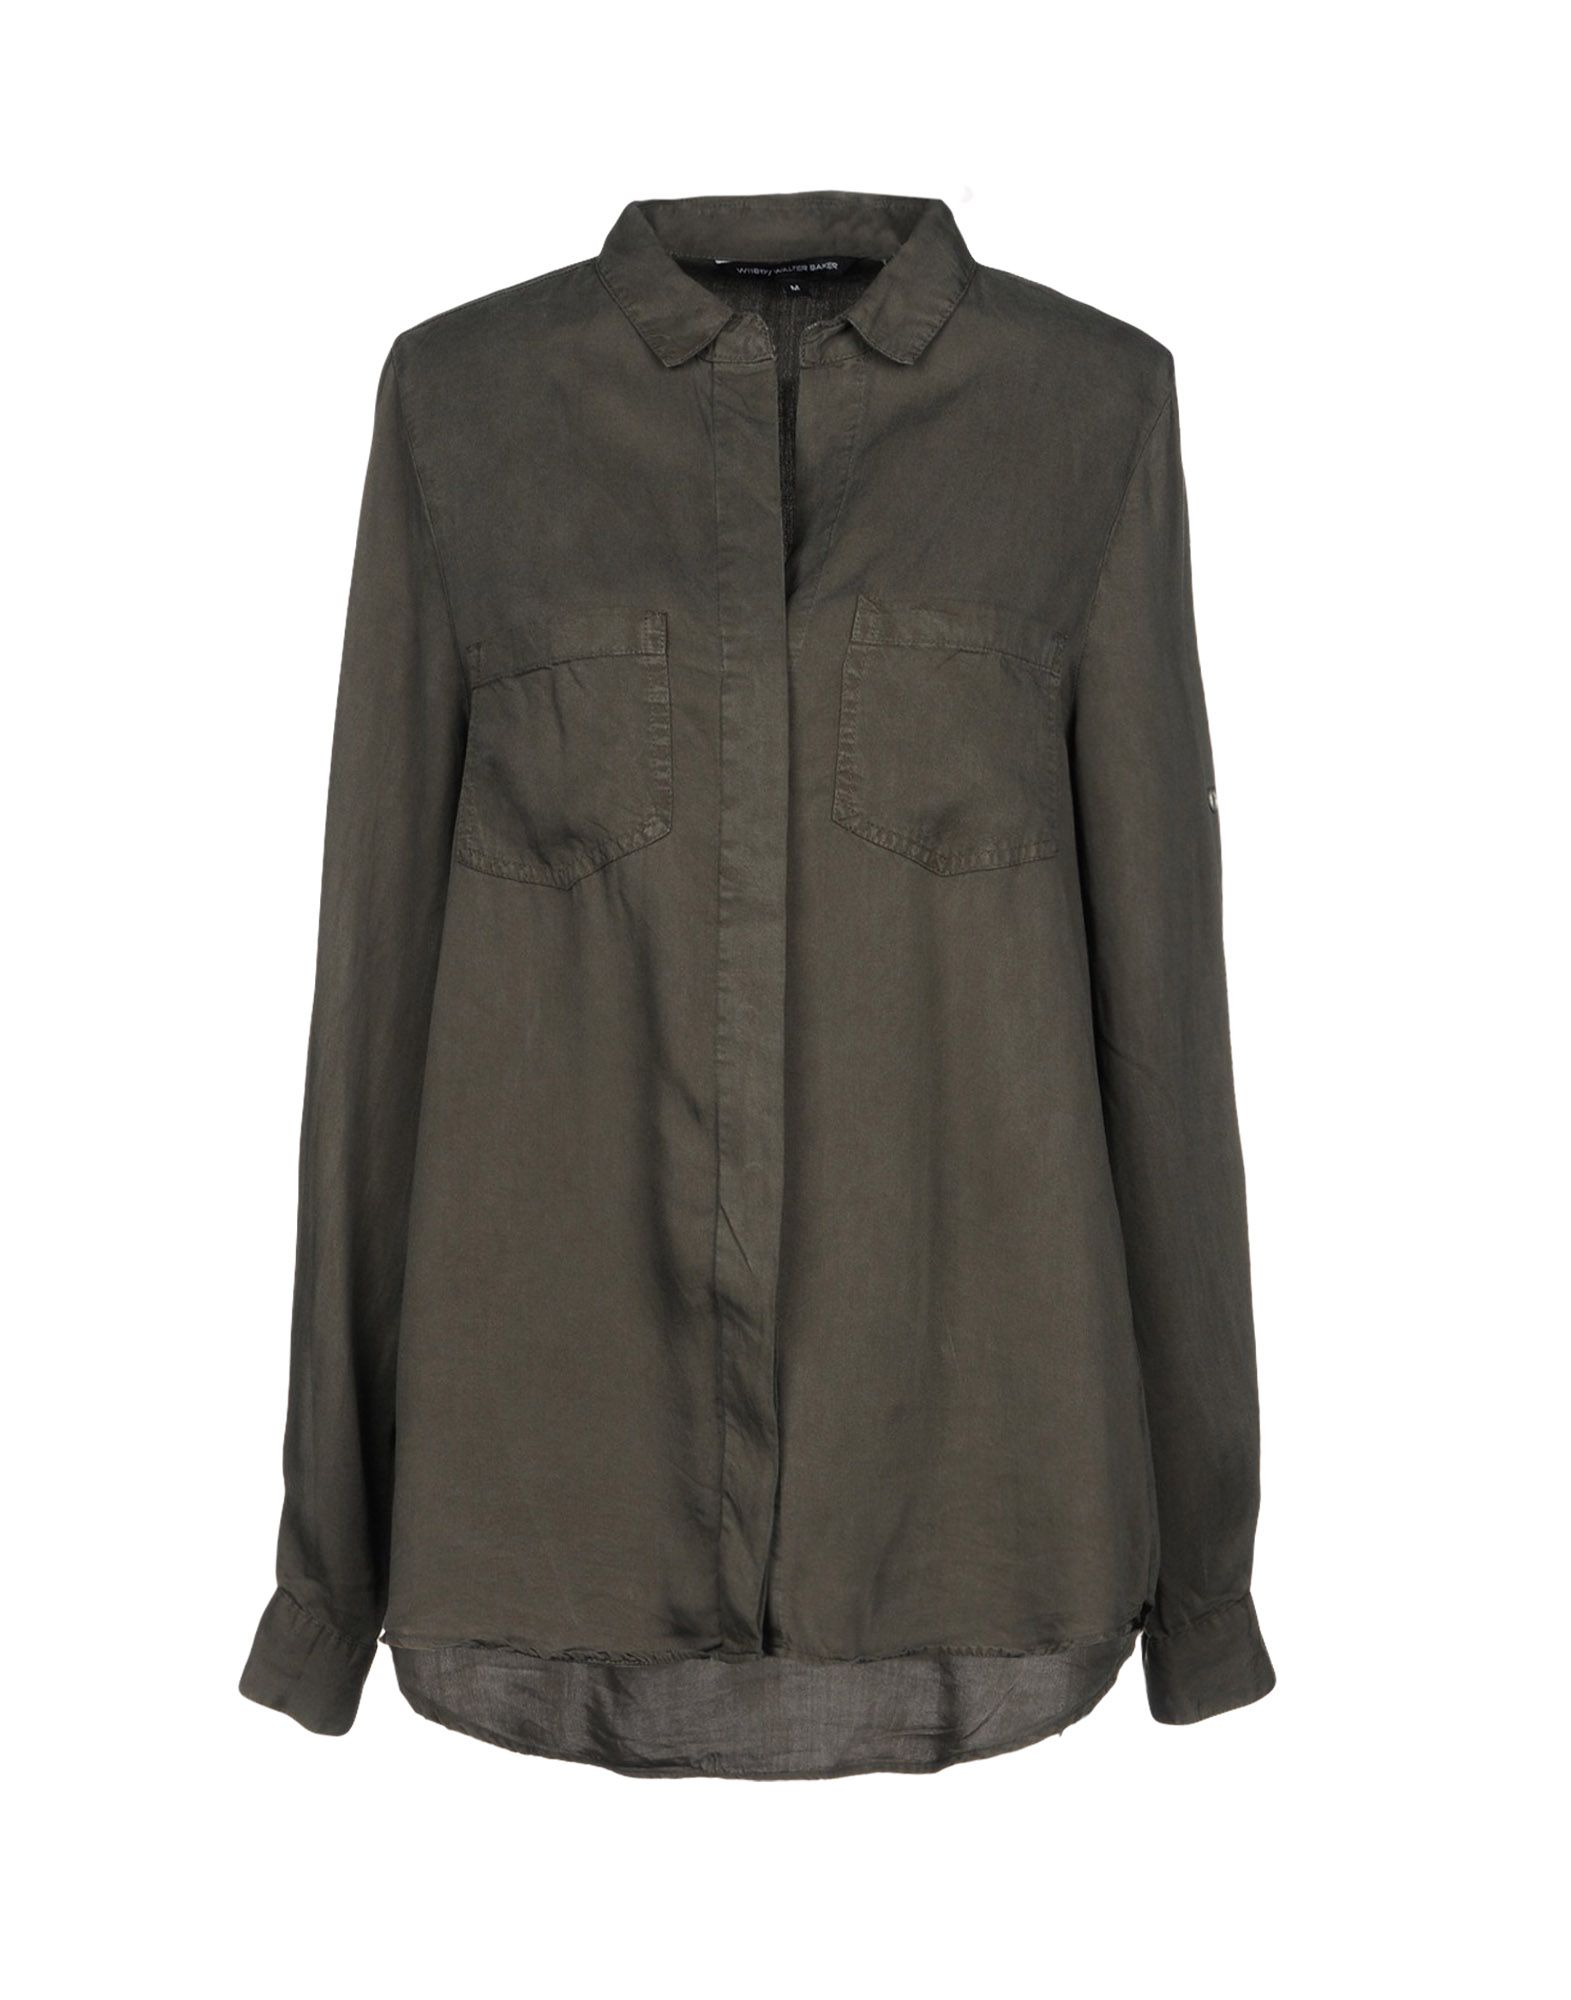 W118 BY WALTER BAKER Solid Color Shirts & Blouses in Dark Green